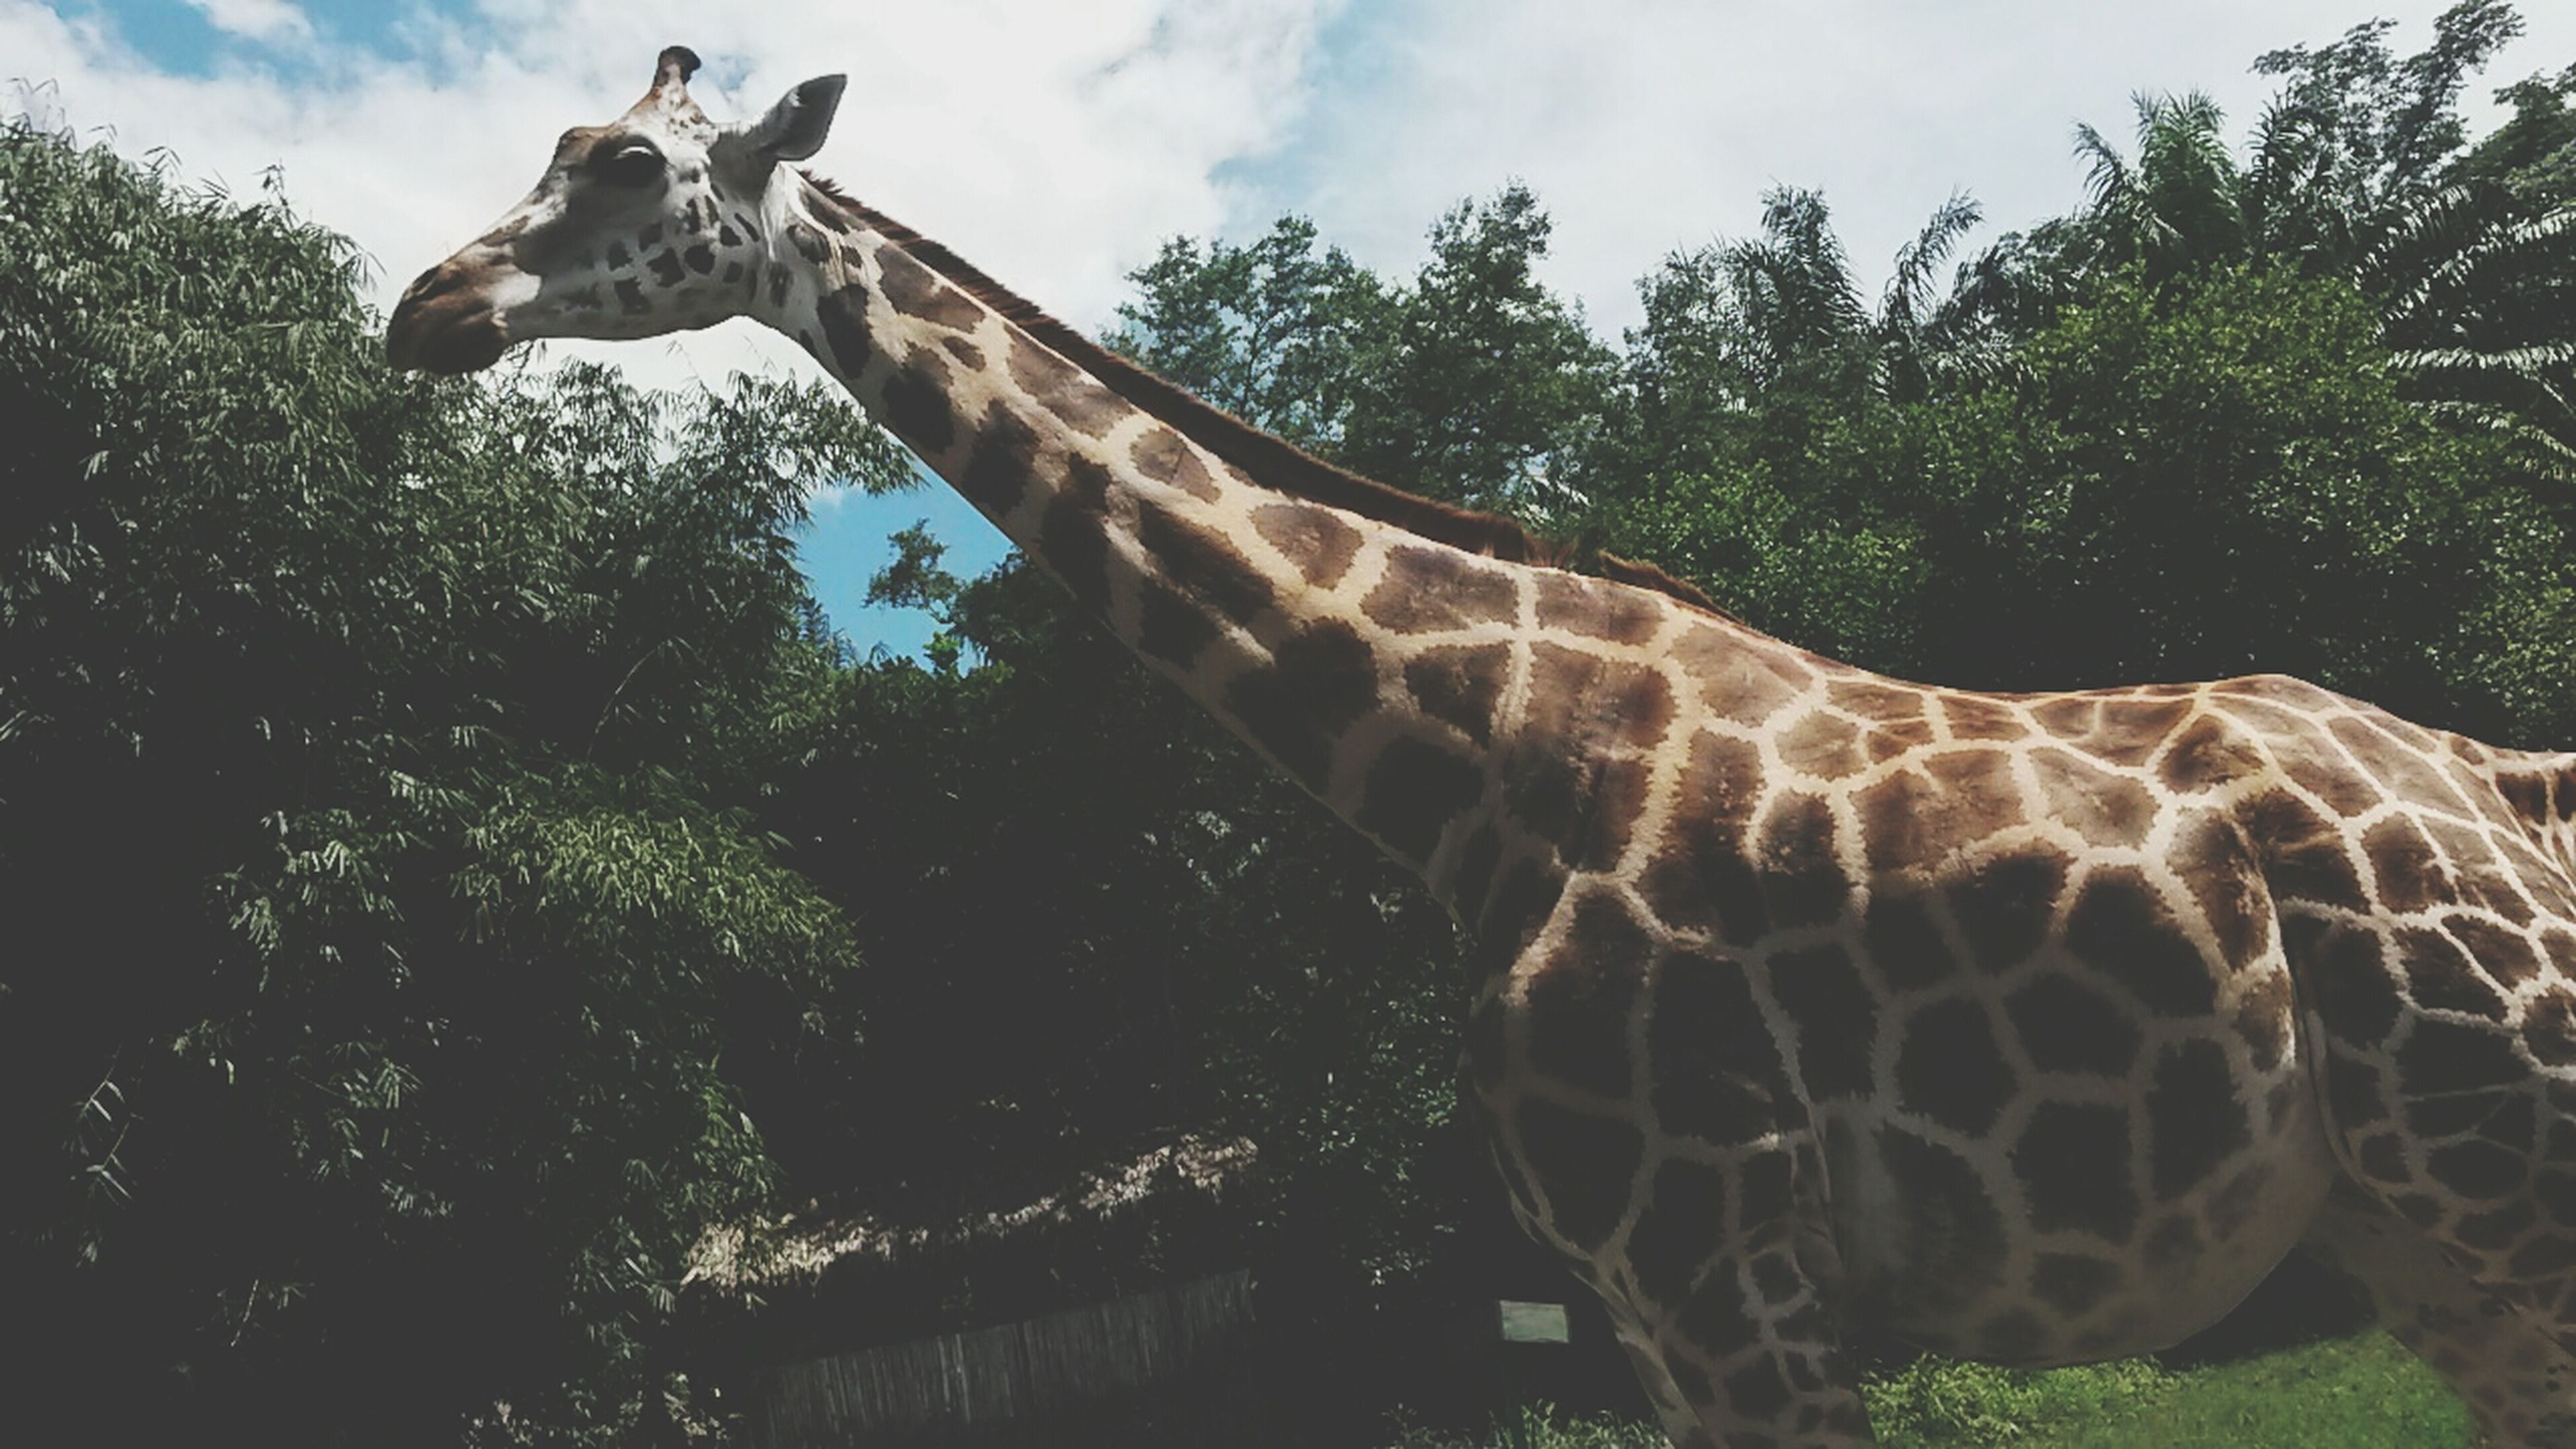 tree, animal themes, giraffe, animals in the wild, sky, low angle view, wildlife, one animal, safari animals, nature, growth, day, animal markings, animal representation, mammal, no people, sculpture, outdoors, art and craft, plant